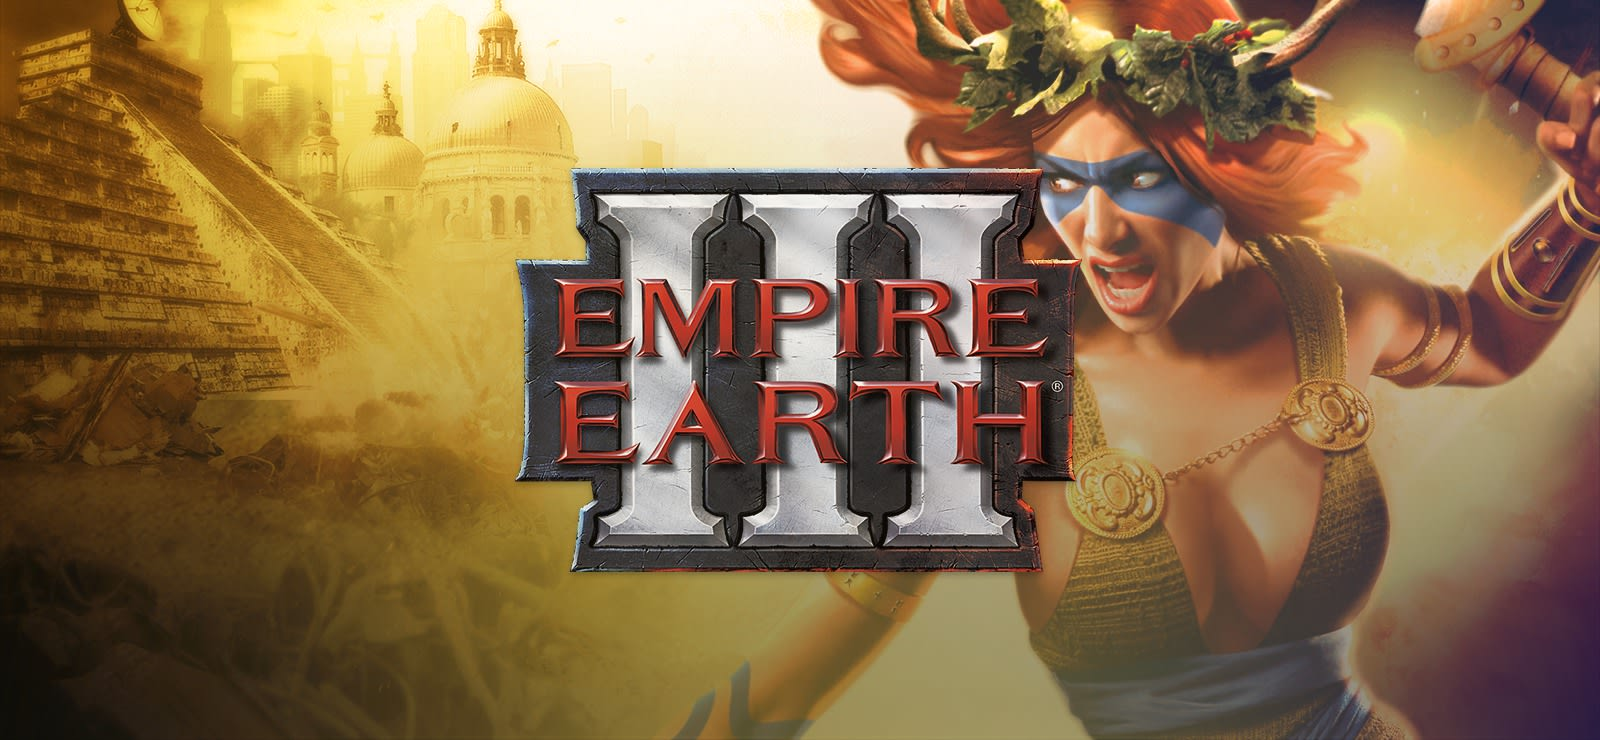 Empire Earth 3 varies-with-device